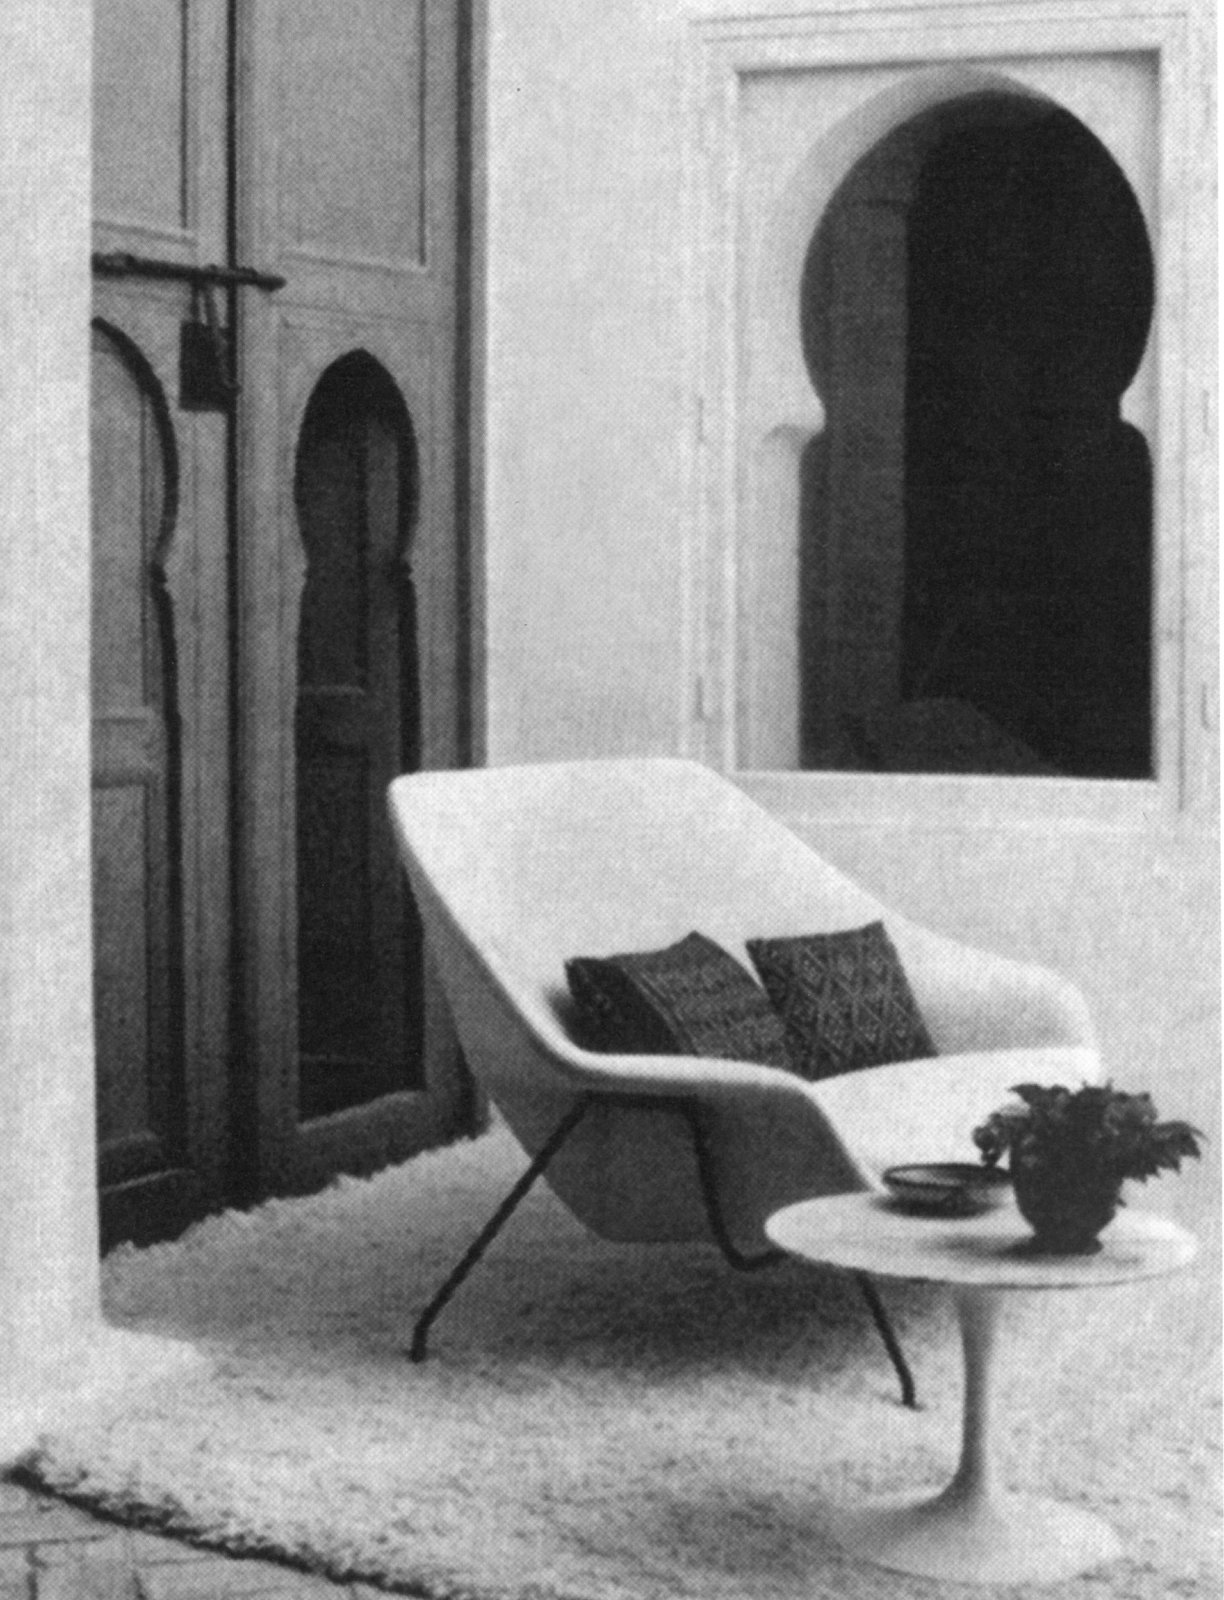 Womb Settee at Yves Vidal and Charles Sévigny's home in Tangier, Morocco. Photograph from the Knoll Archive.  Timeless Iconic Design from Knoll Inspiration: Reintroducing the Womb Settee